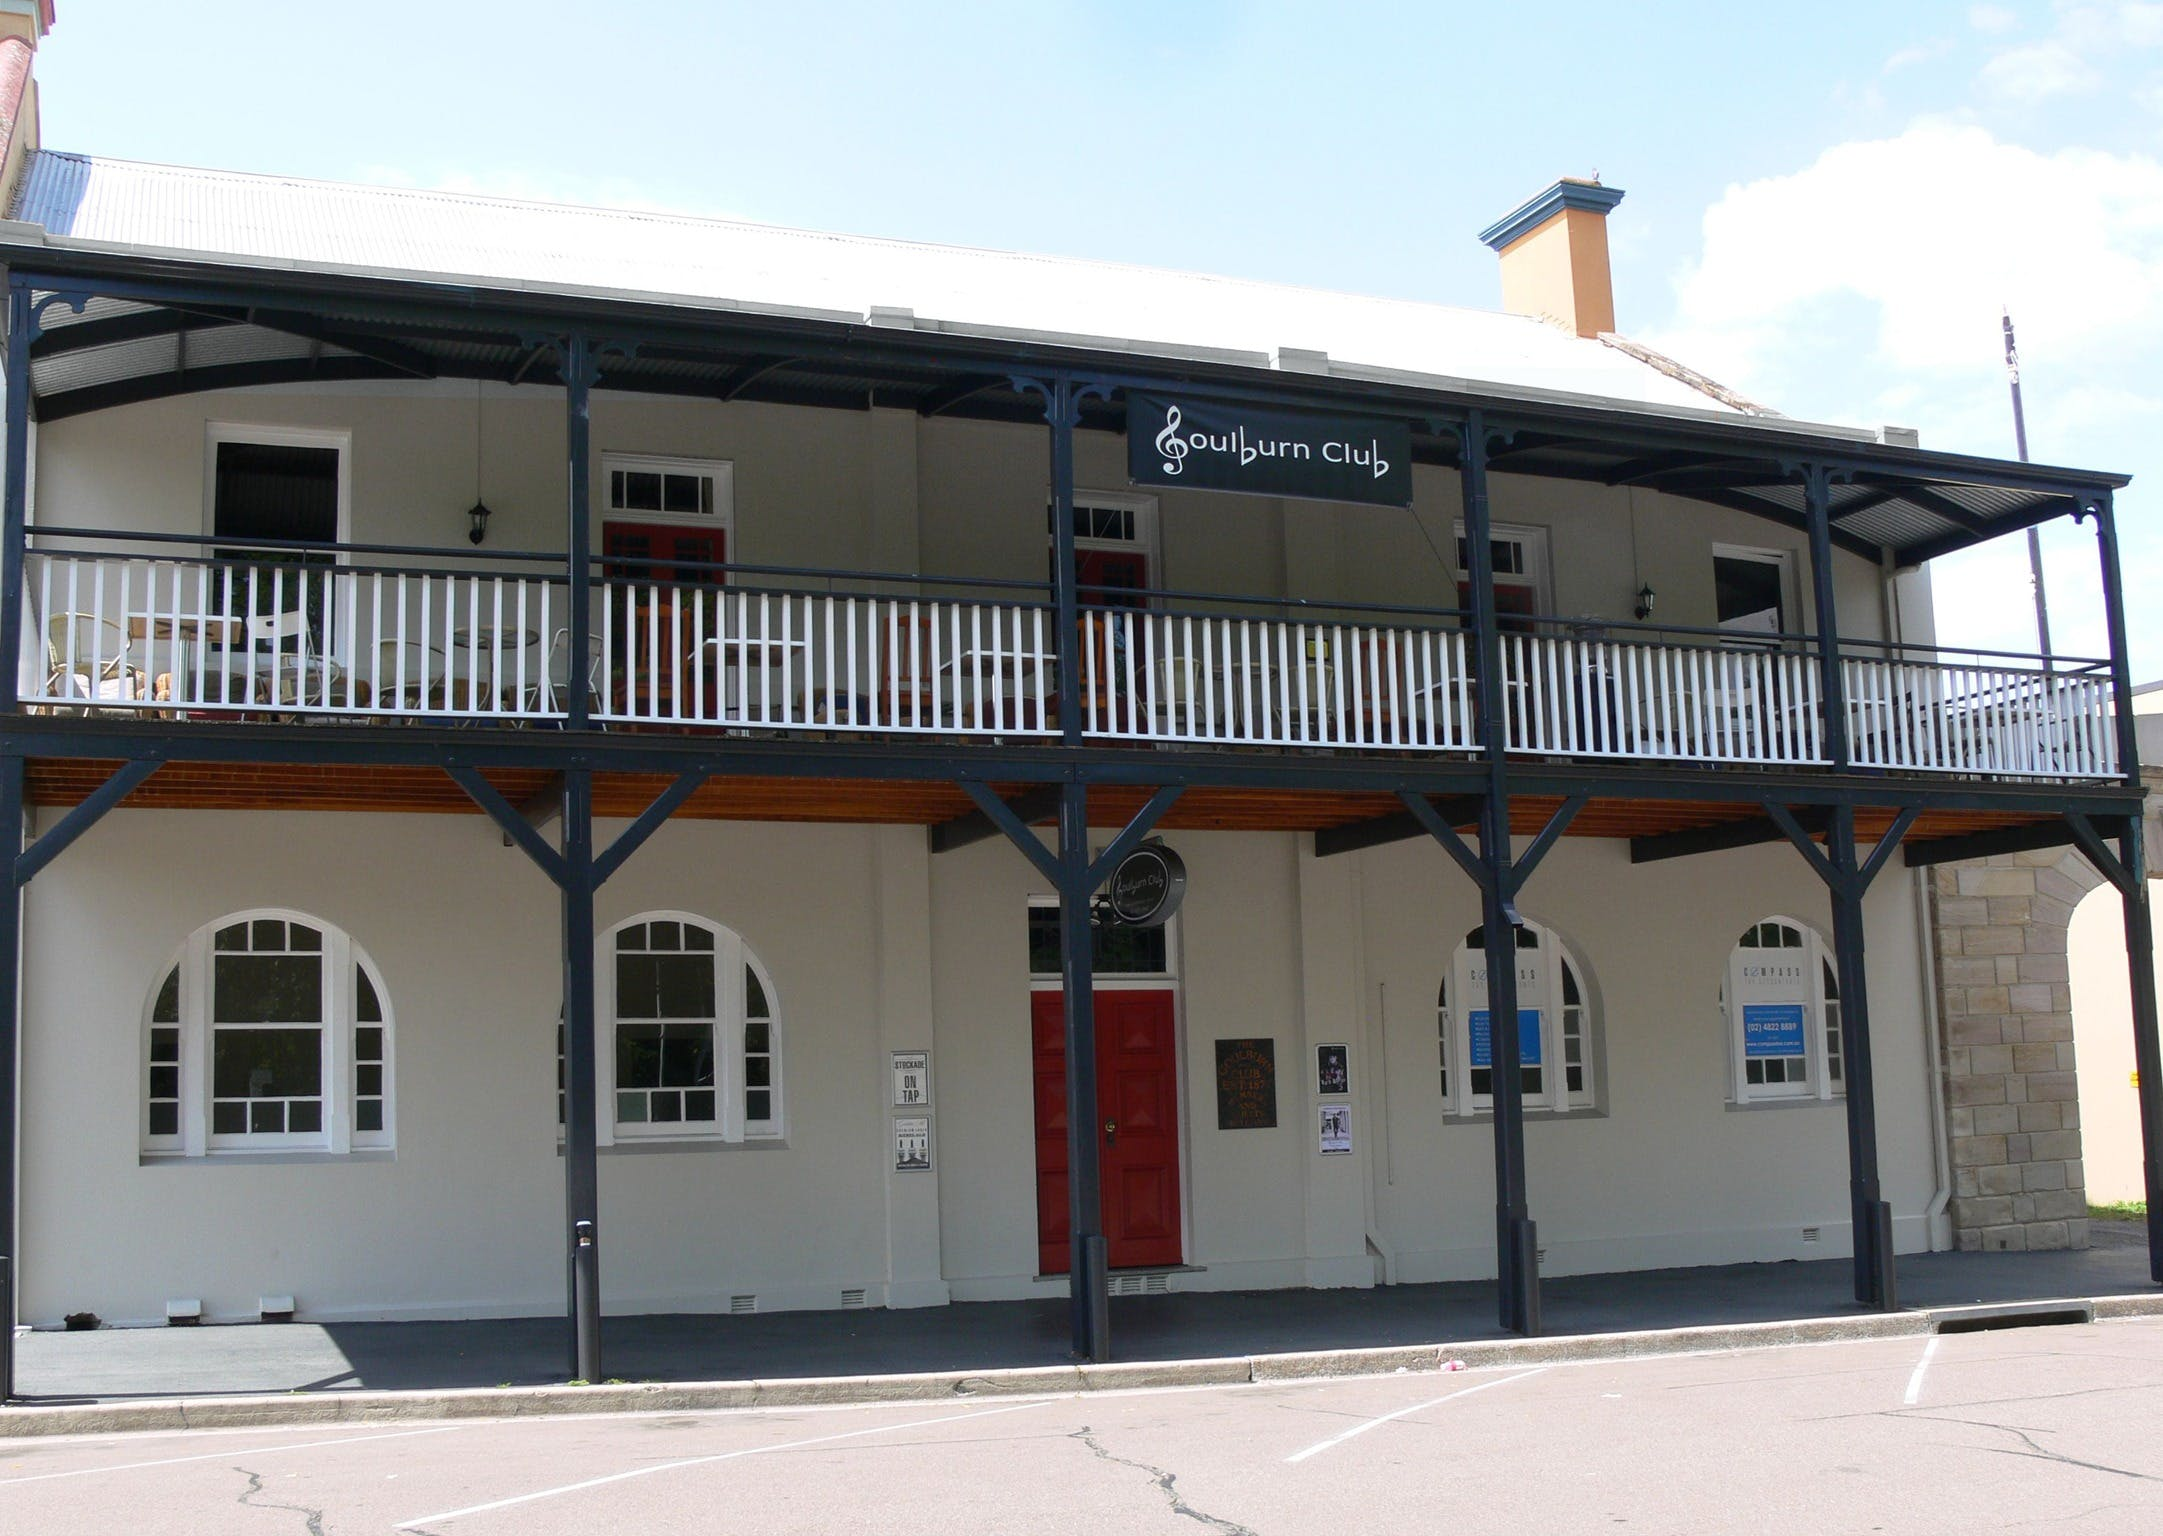 Open Mic Night at the Goulburn Club - Accommodation in Bendigo